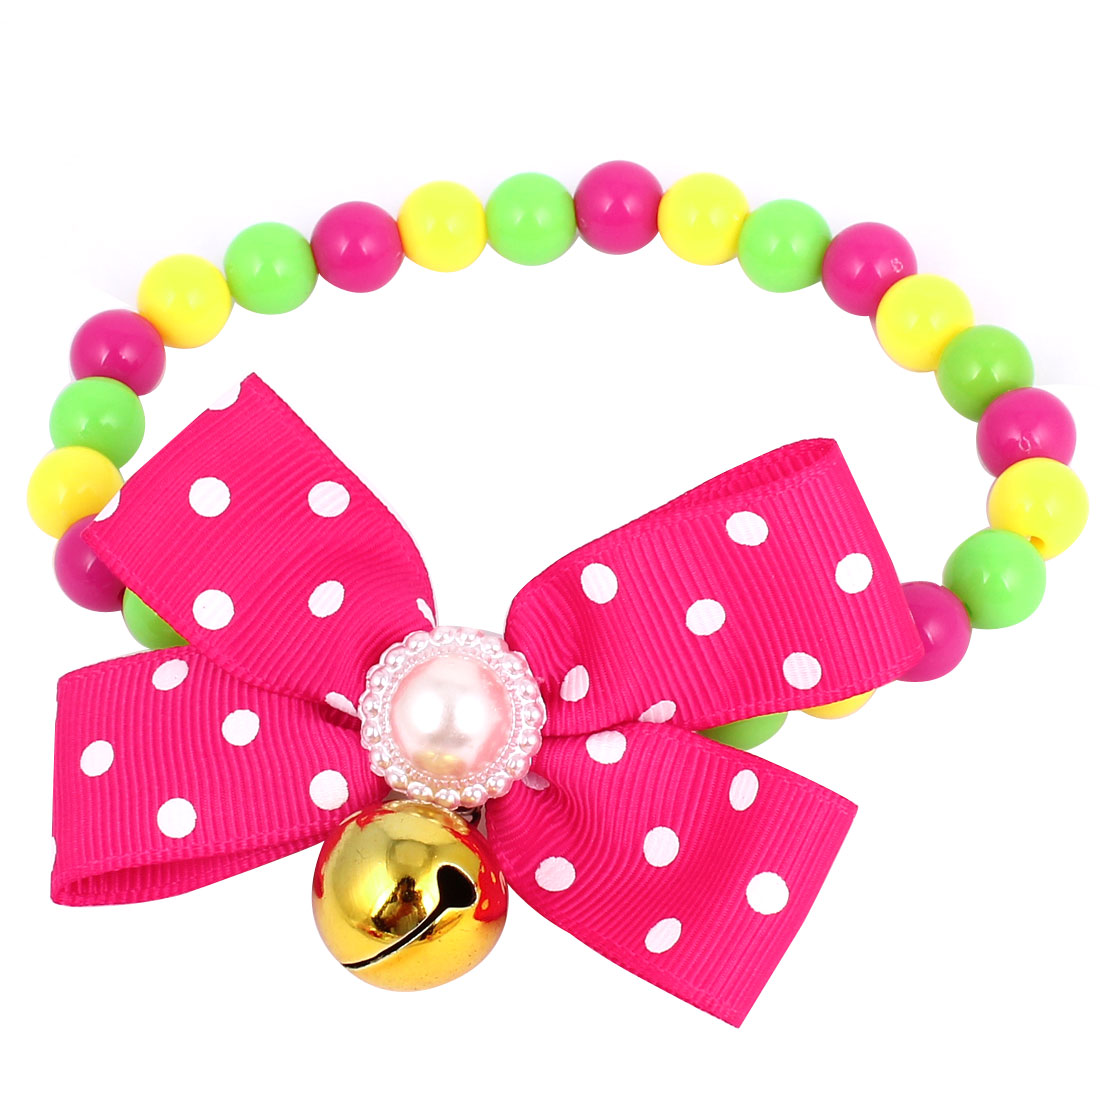 Metal Bell Pendant Bowtie Accent Pet Dog Plastic Round Beads Collar Necklace Assorted Color S